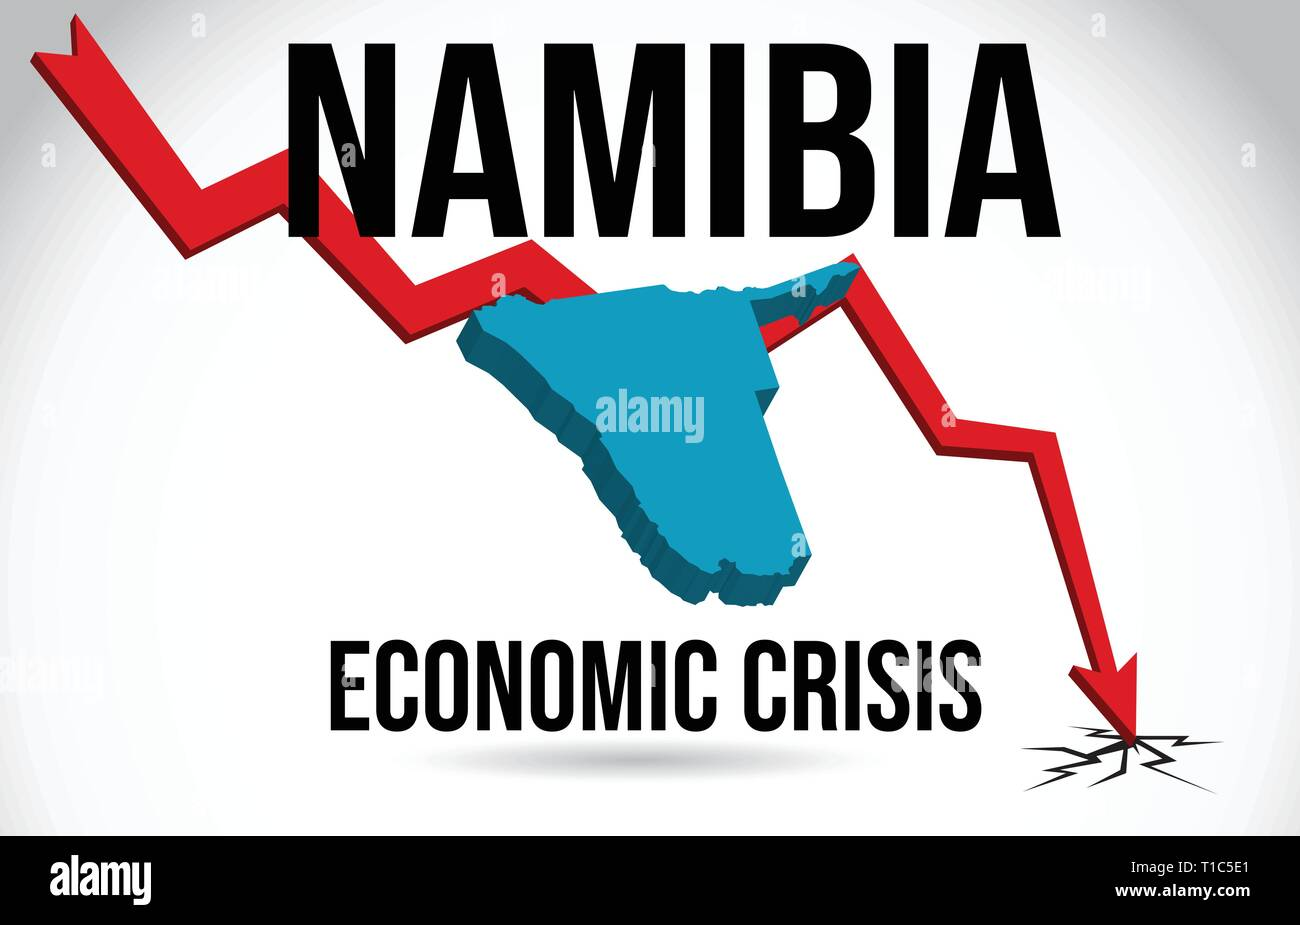 Namibia Map Financial Crisis Economic Collapse Market Crash Global Meltdown Vector Illustration. - Stock Vector